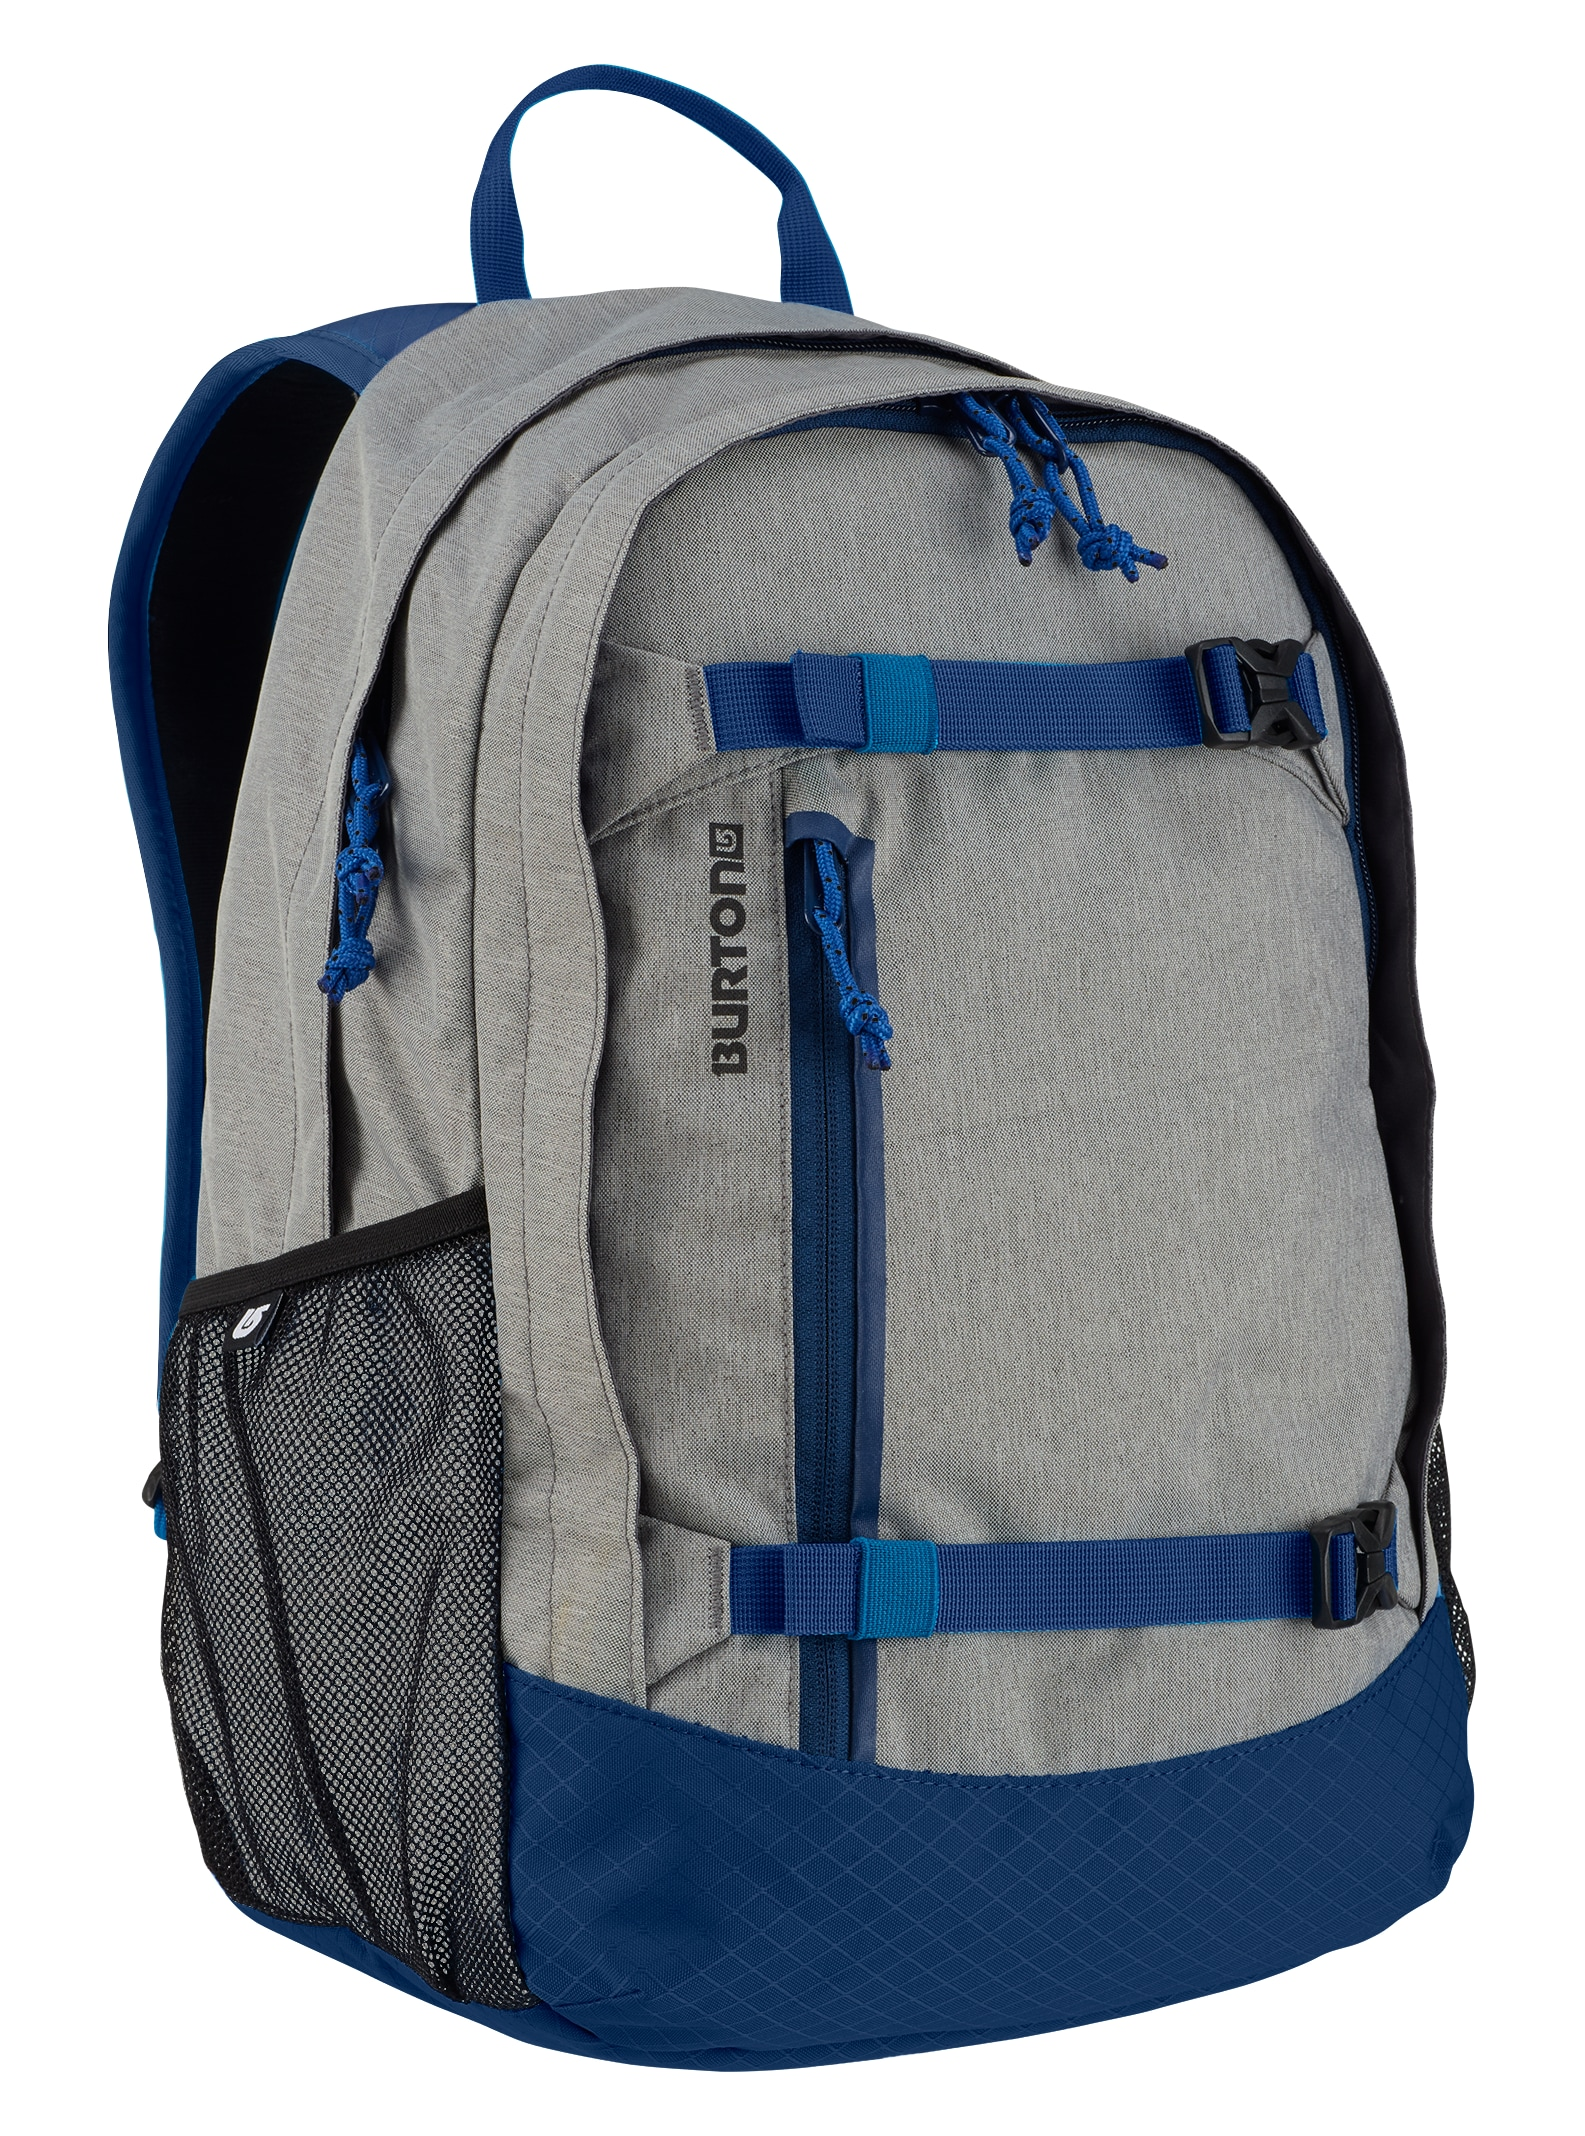 Burton - Sac à dos Day Hiker 20 L enfant affichage en Dark Ash Heather